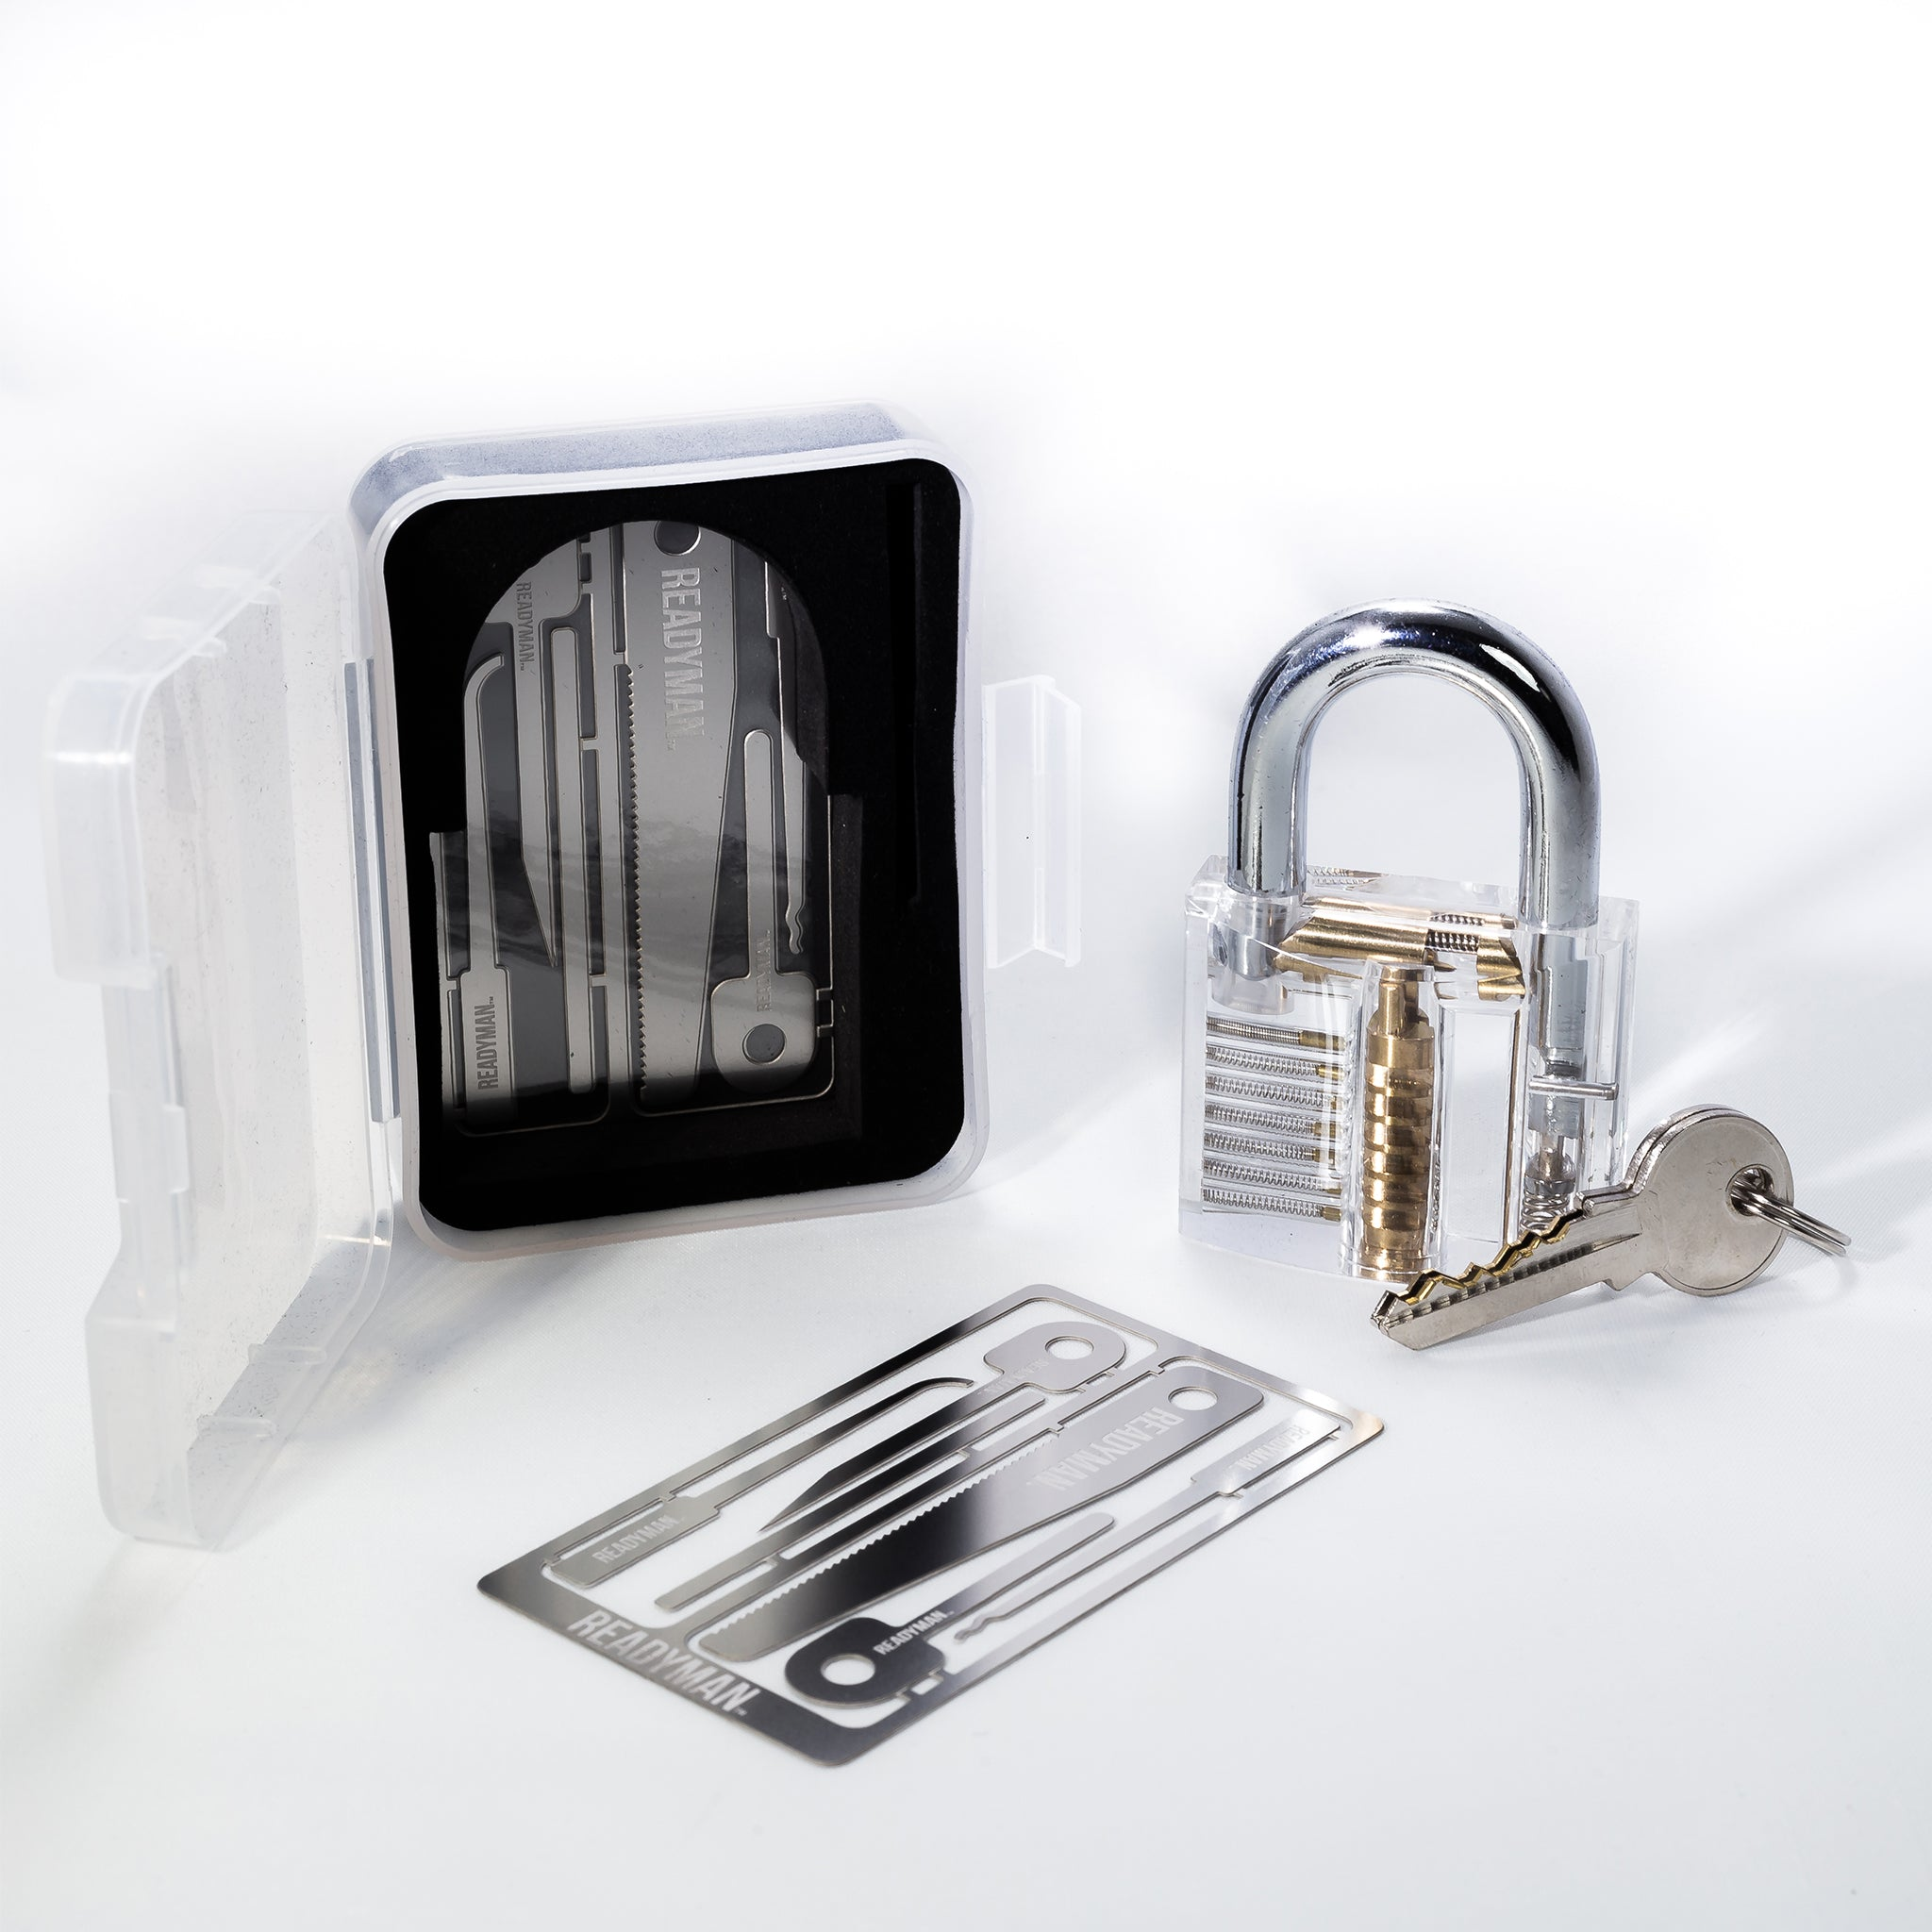 Acrylic Training Lock + 2 Hostage Escape Cards